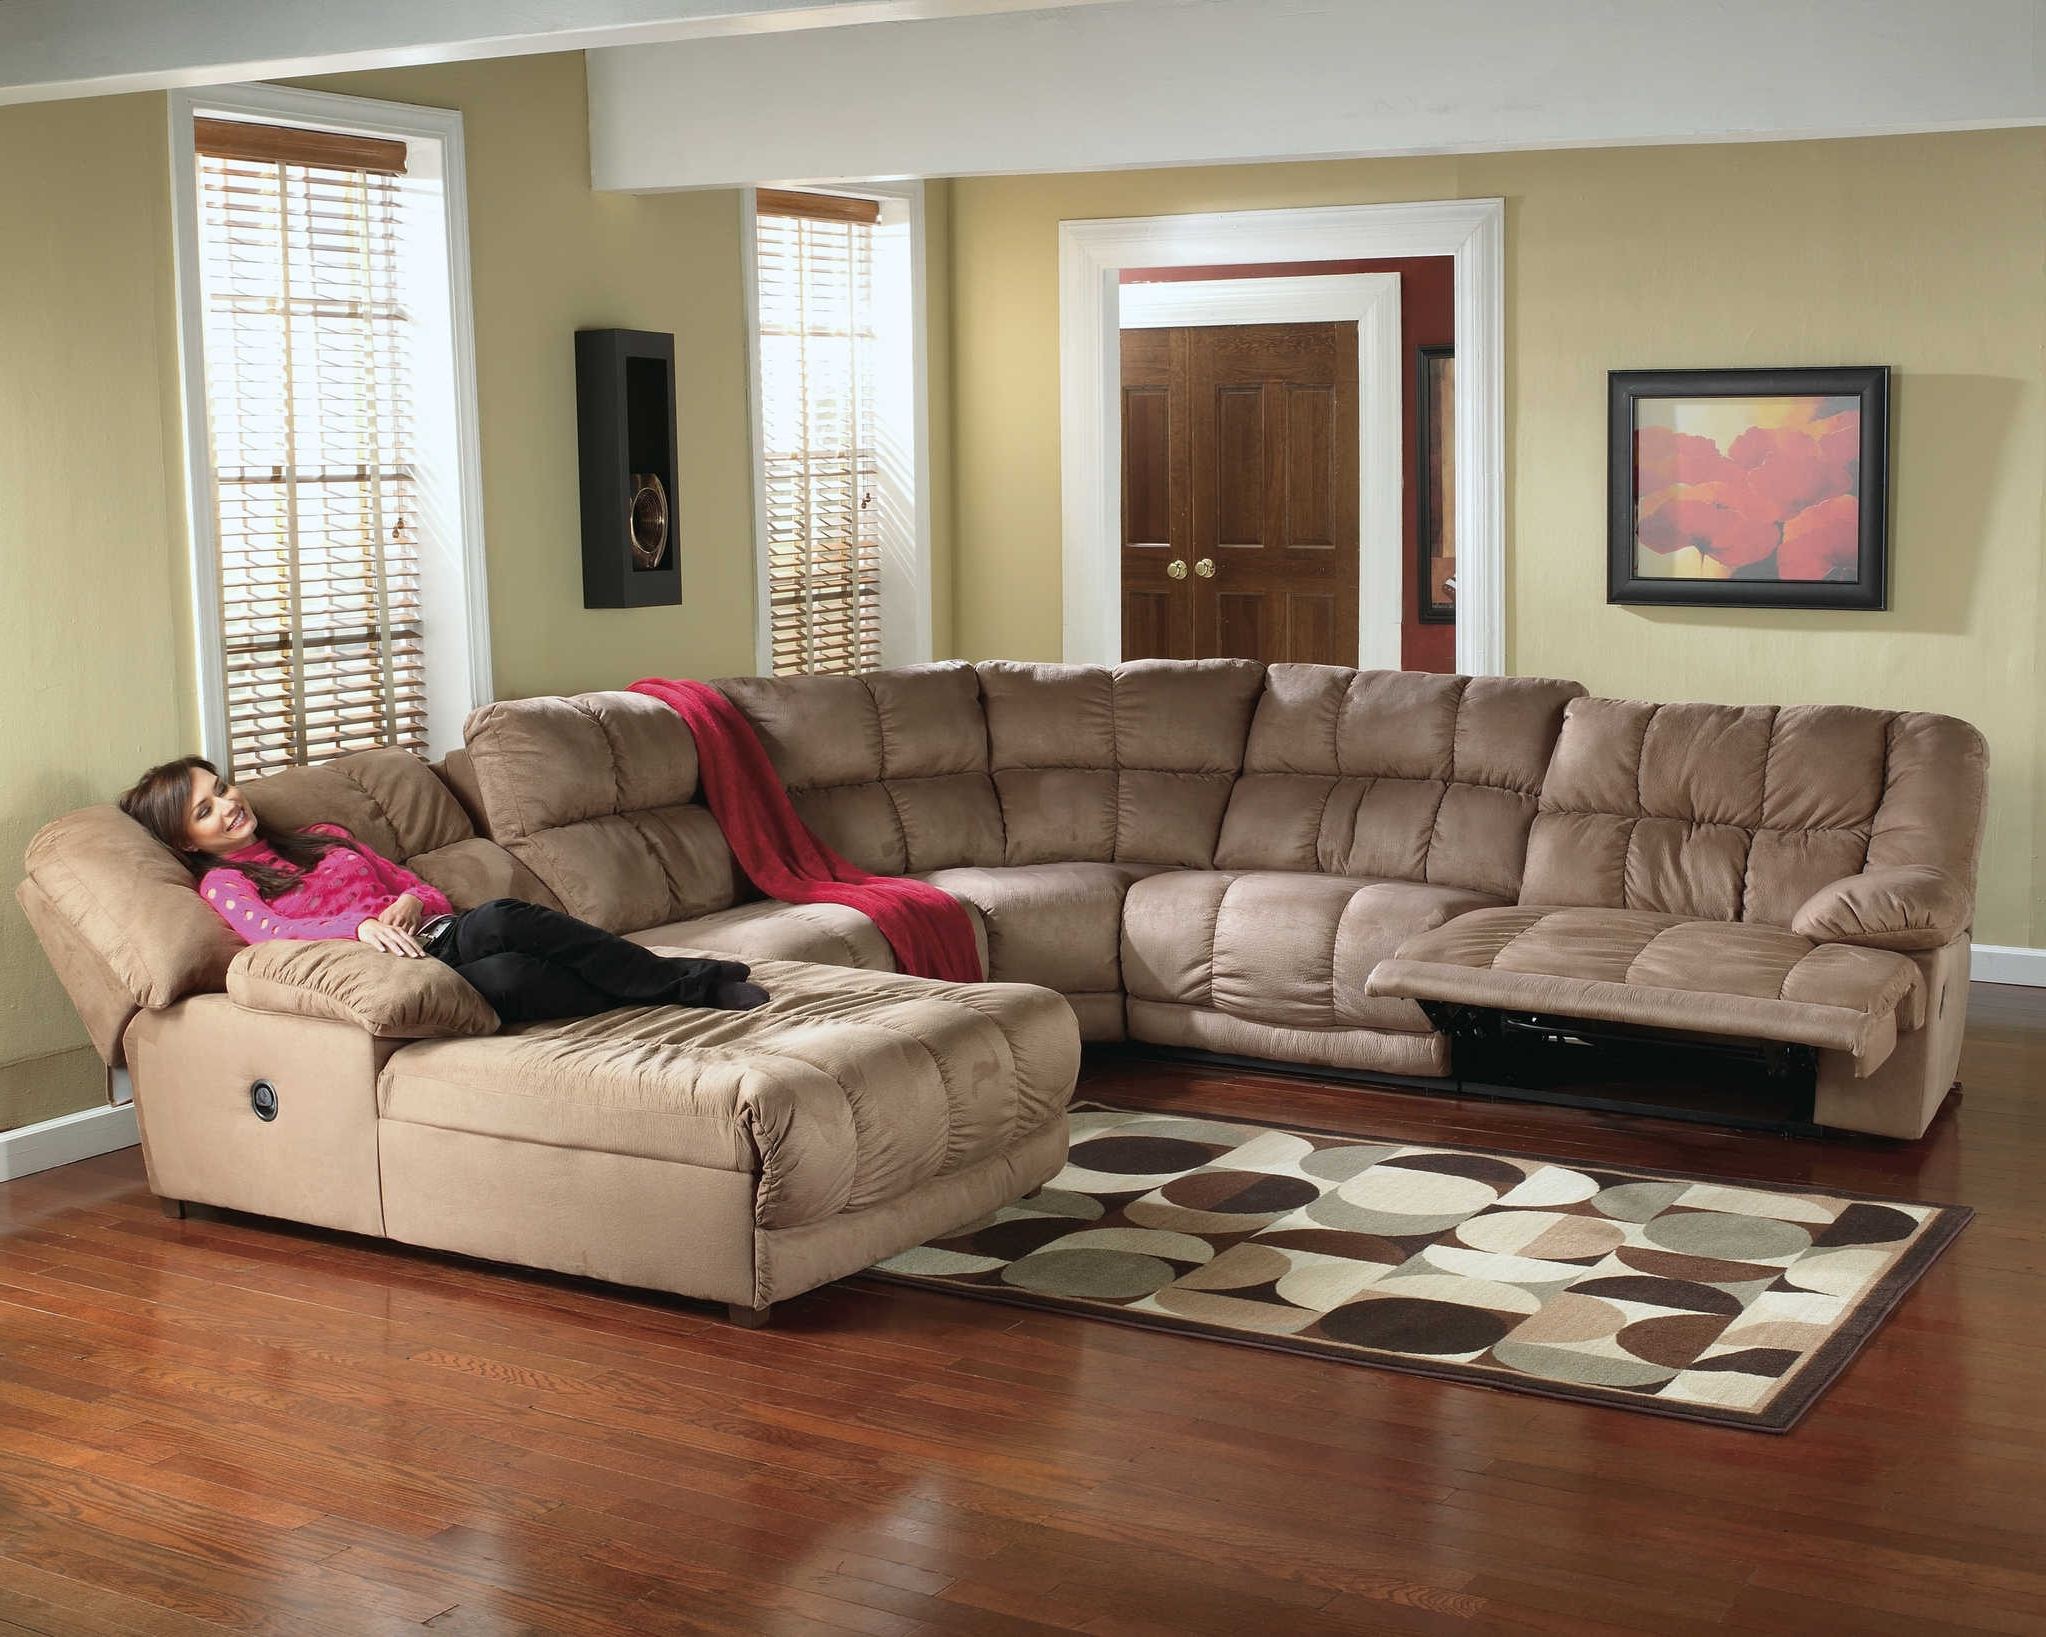 Most Recent Astonishing Sectional Sofas With Chaise And Recliner 31 About Pertaining To Las Vegas Sectional Sofas (View 9 of 20)